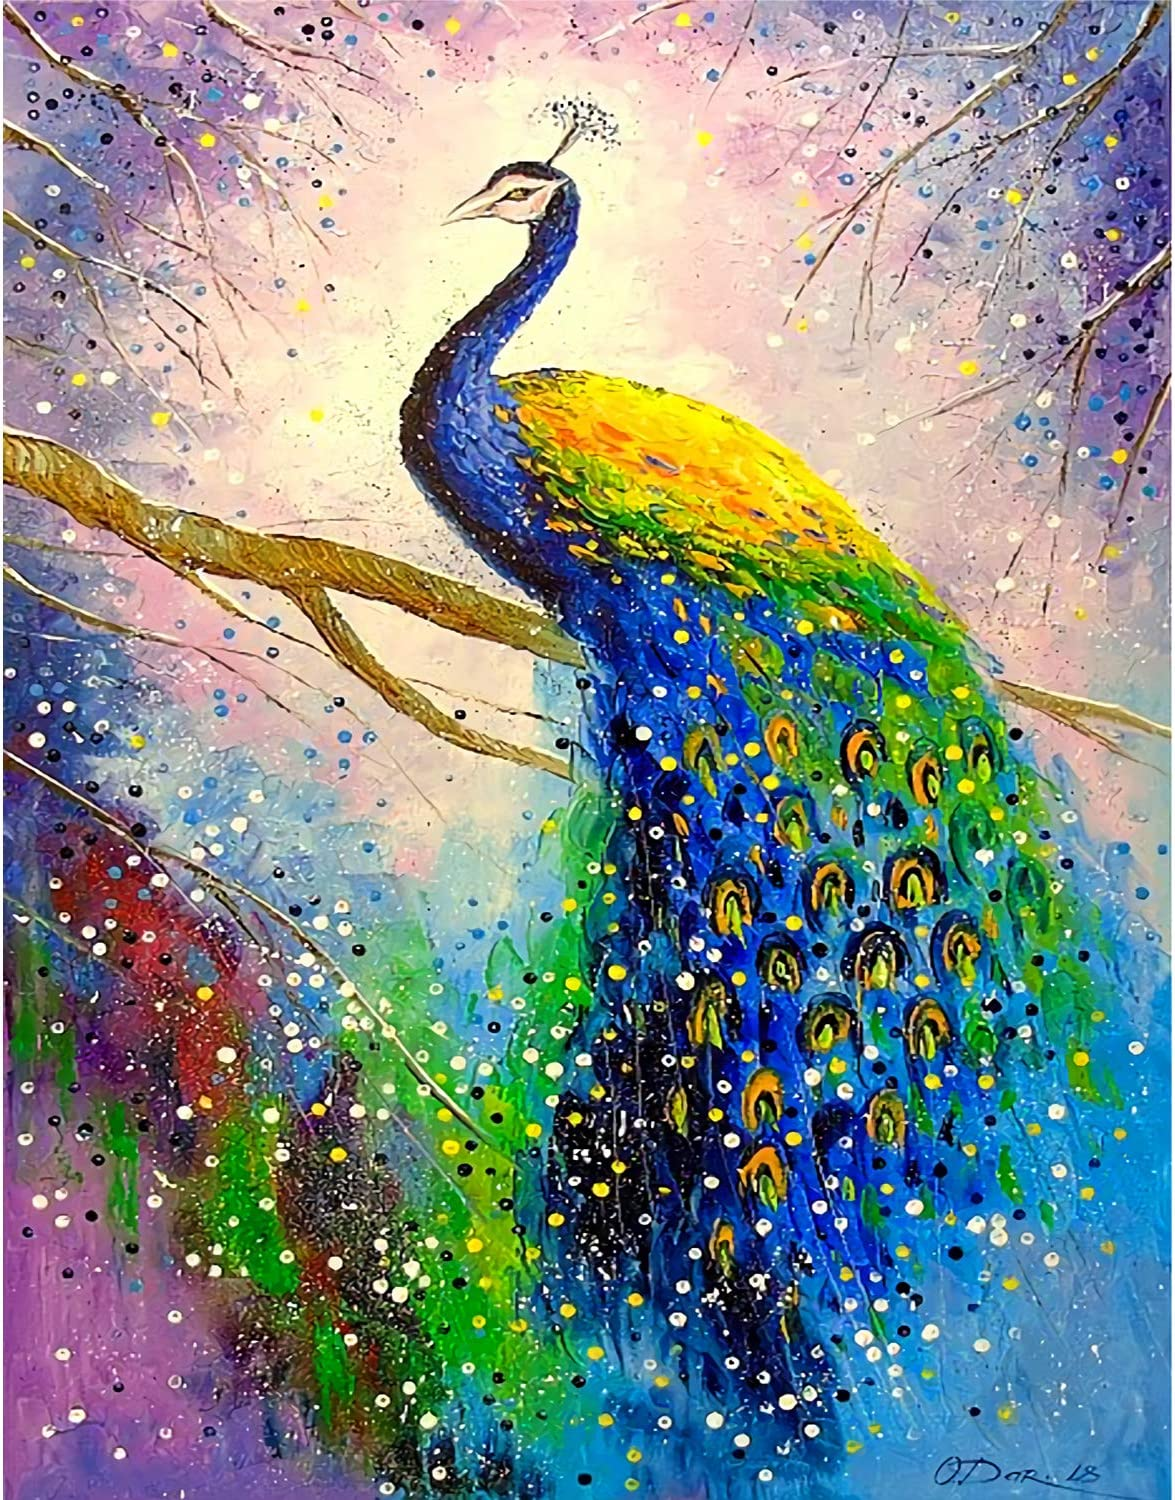 MWOOT DIY 5D Full Drill Diamond Embroidery Painting by Number Kit,Peacock Diamond Rhinestone Pasted Painting Cross Stitch Crafts for Home Wall Decor (30x40cm)